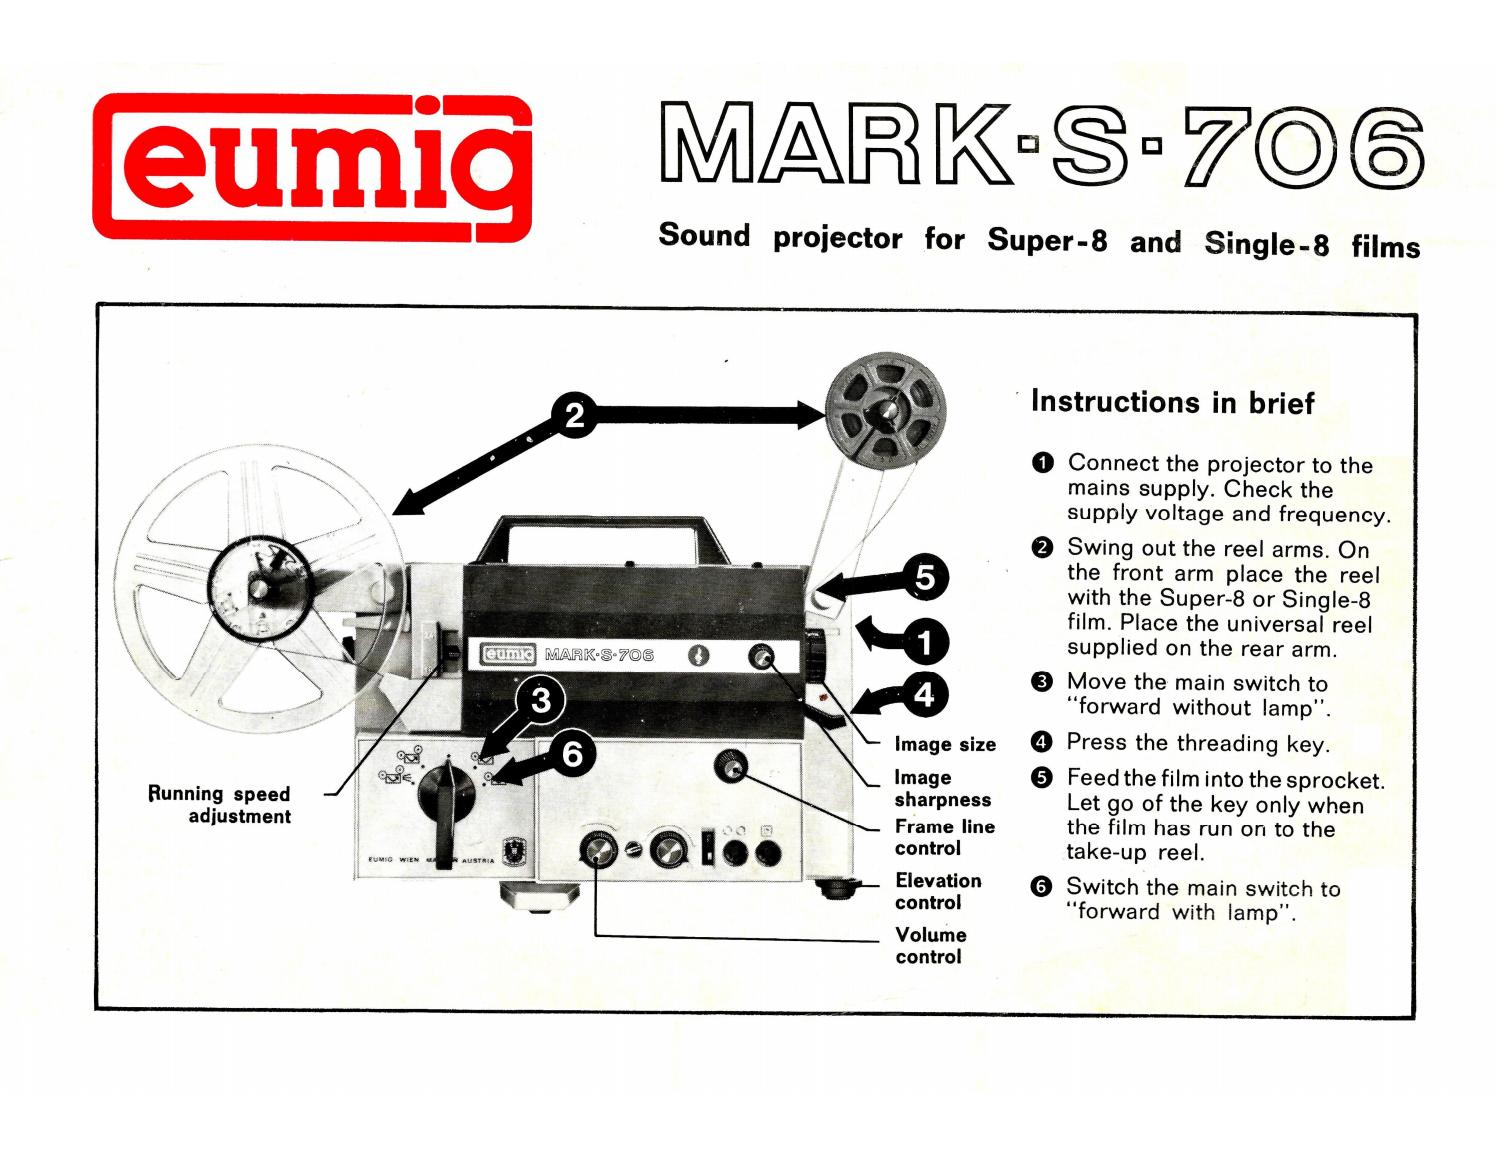 Eumig Mark S 706 User Manual 24 Pages By Cinema62 Issuu